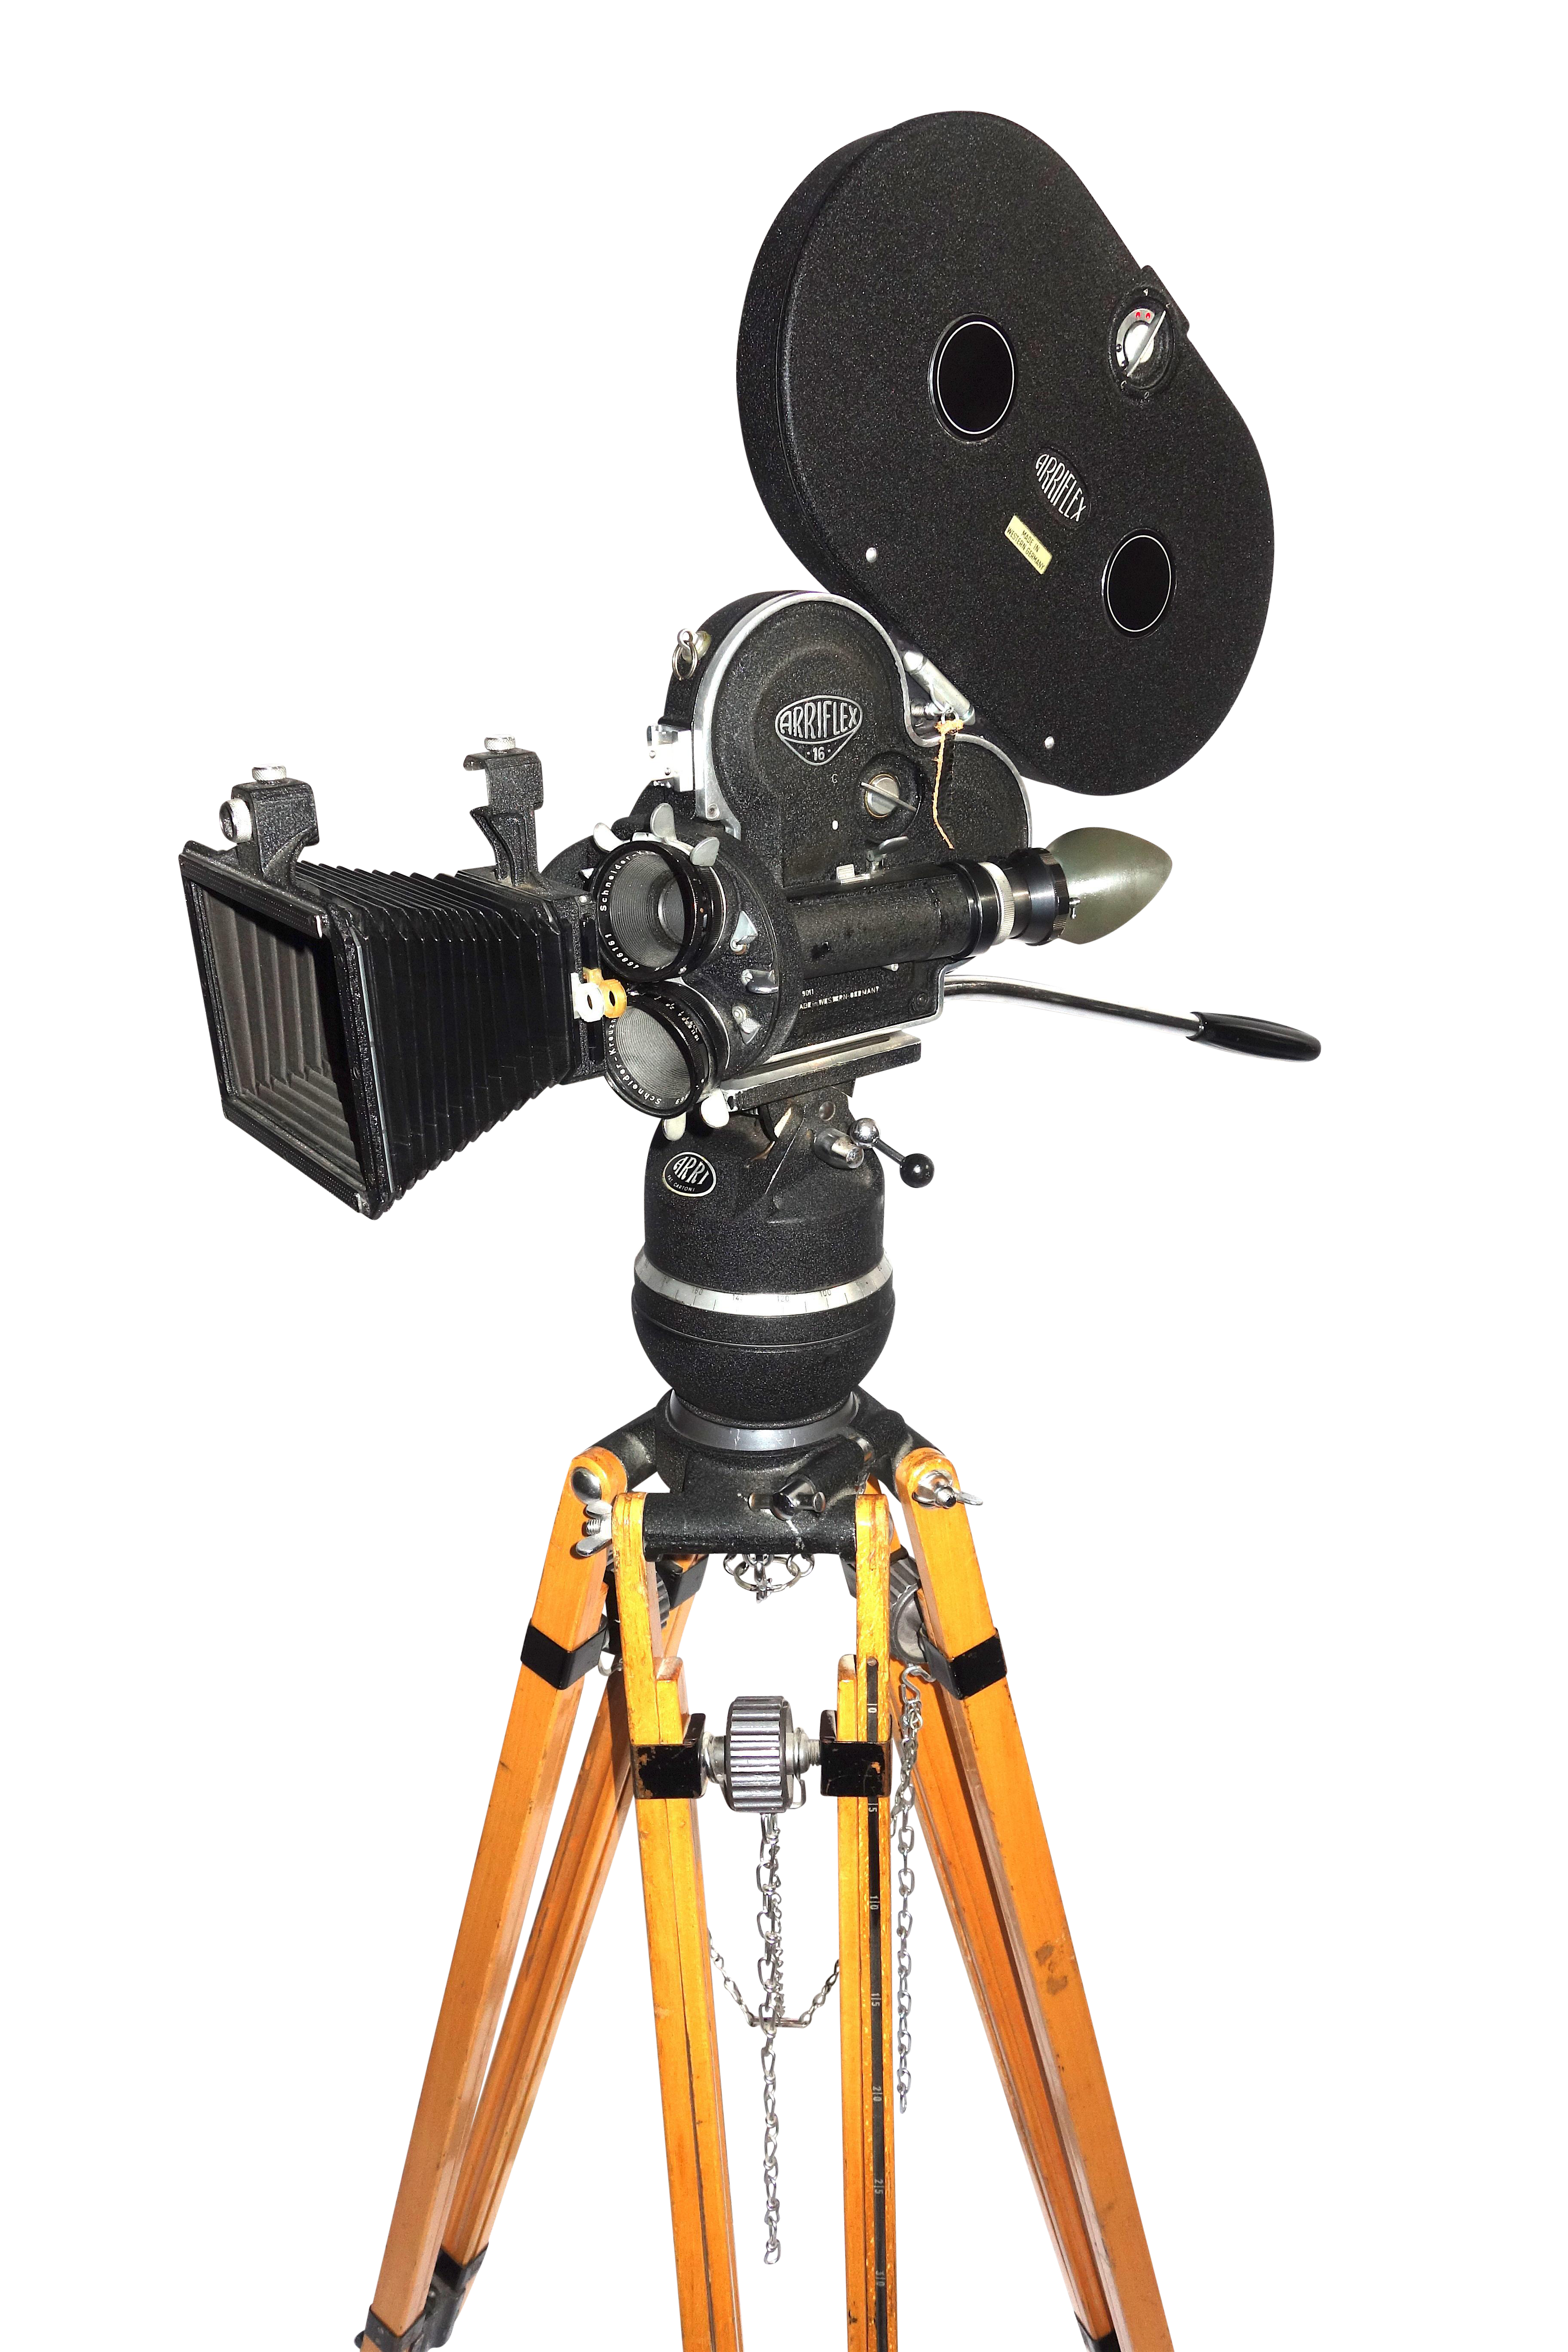 Sophisticated Arriflex Early 16mm Motion Picture Camera